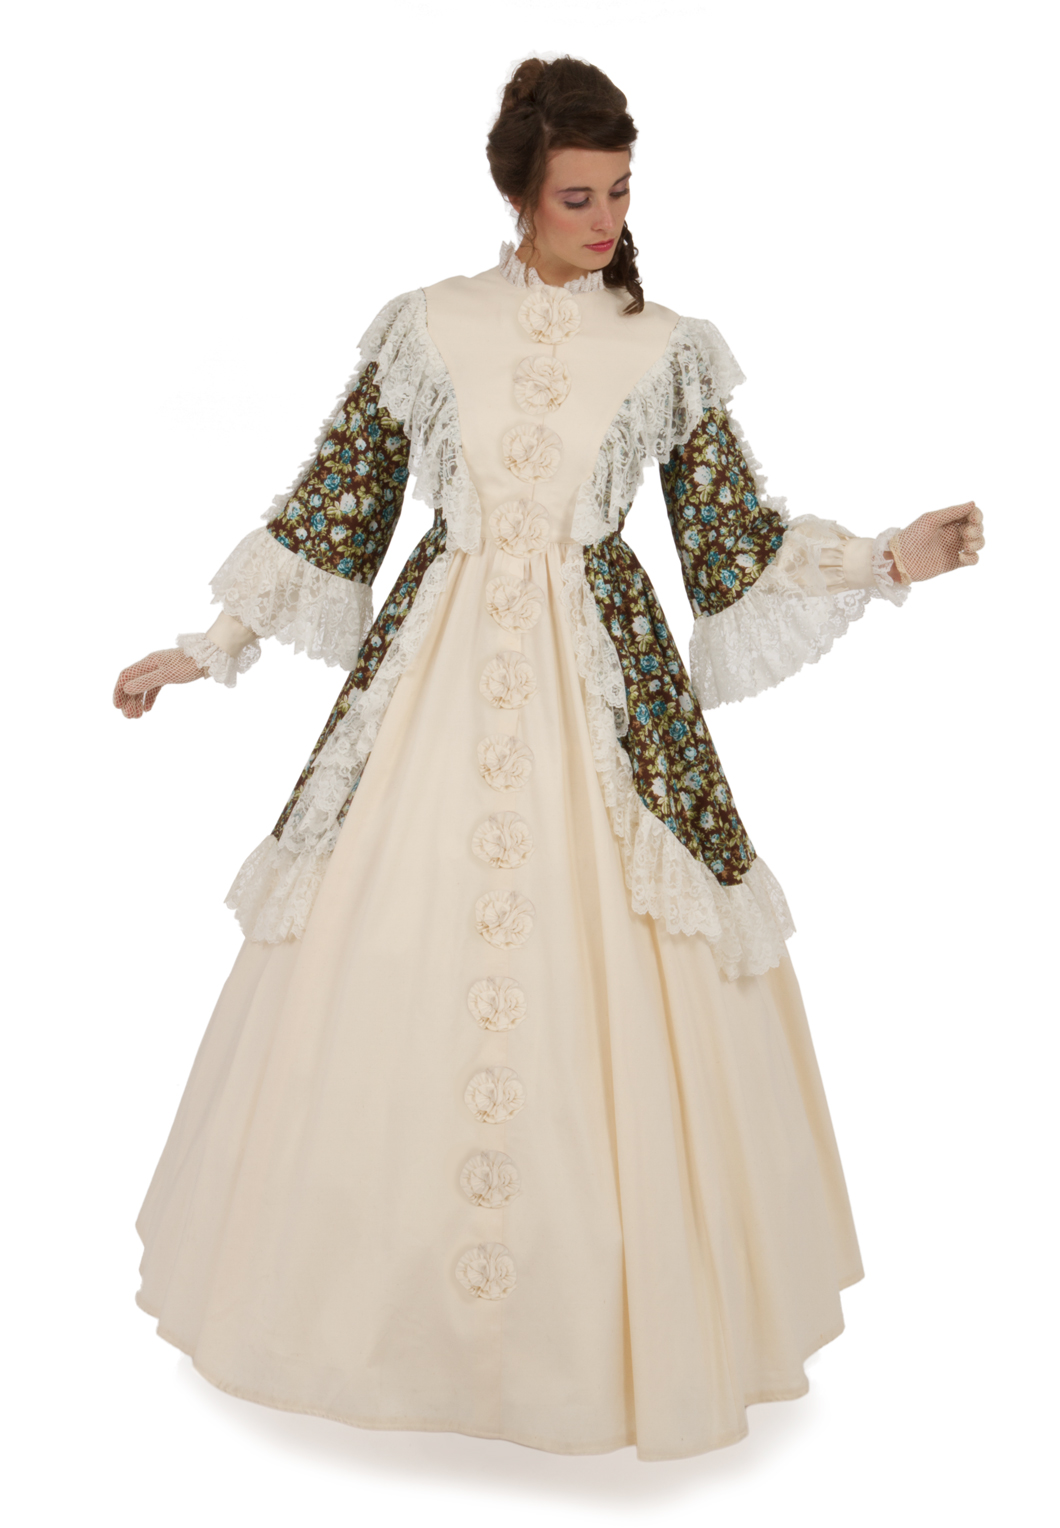 Vertiline Civil War Gown | Recollections